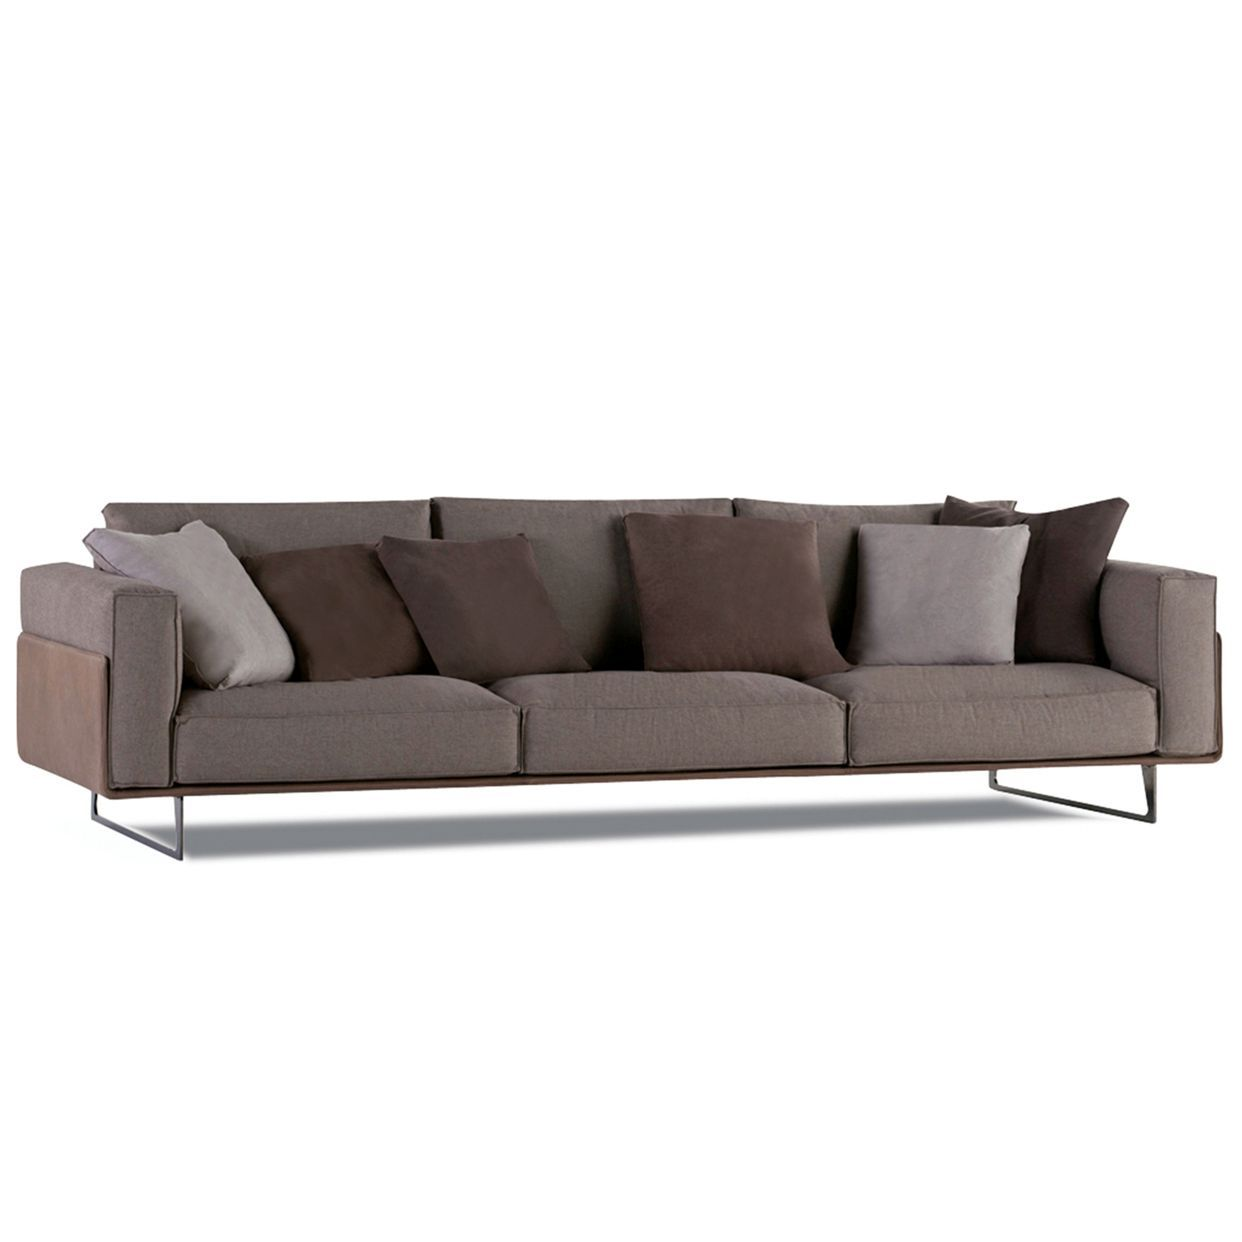 focus 5 seat sofa sofas roche bobois furniture